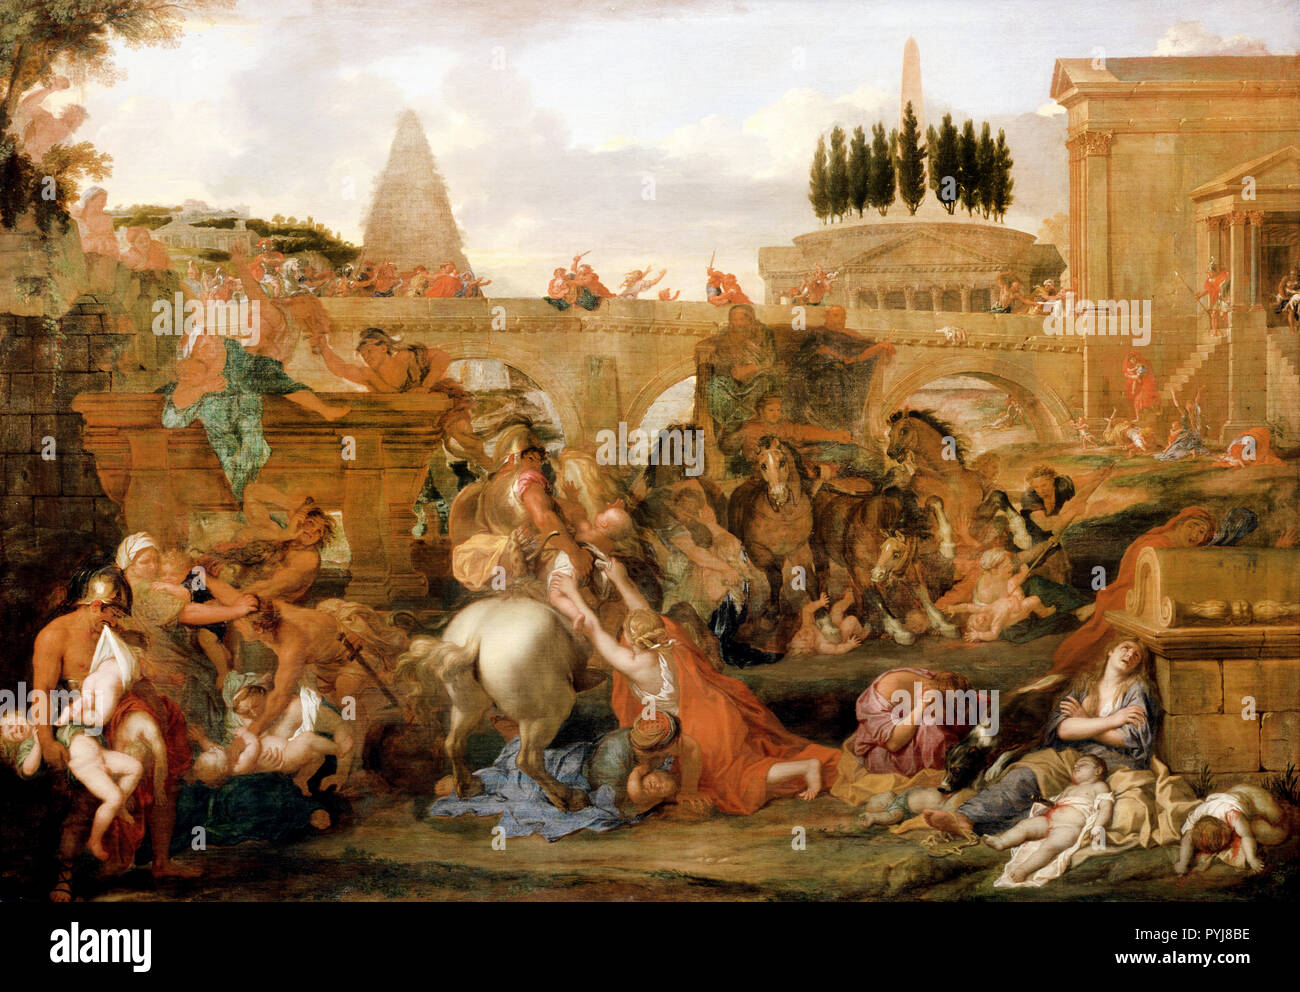 Charles Le Brun, The Massacre of the Innocents, Circa 1660, Oil on canvas, Dulwich Picture Gallery, London, England. Stock Photo